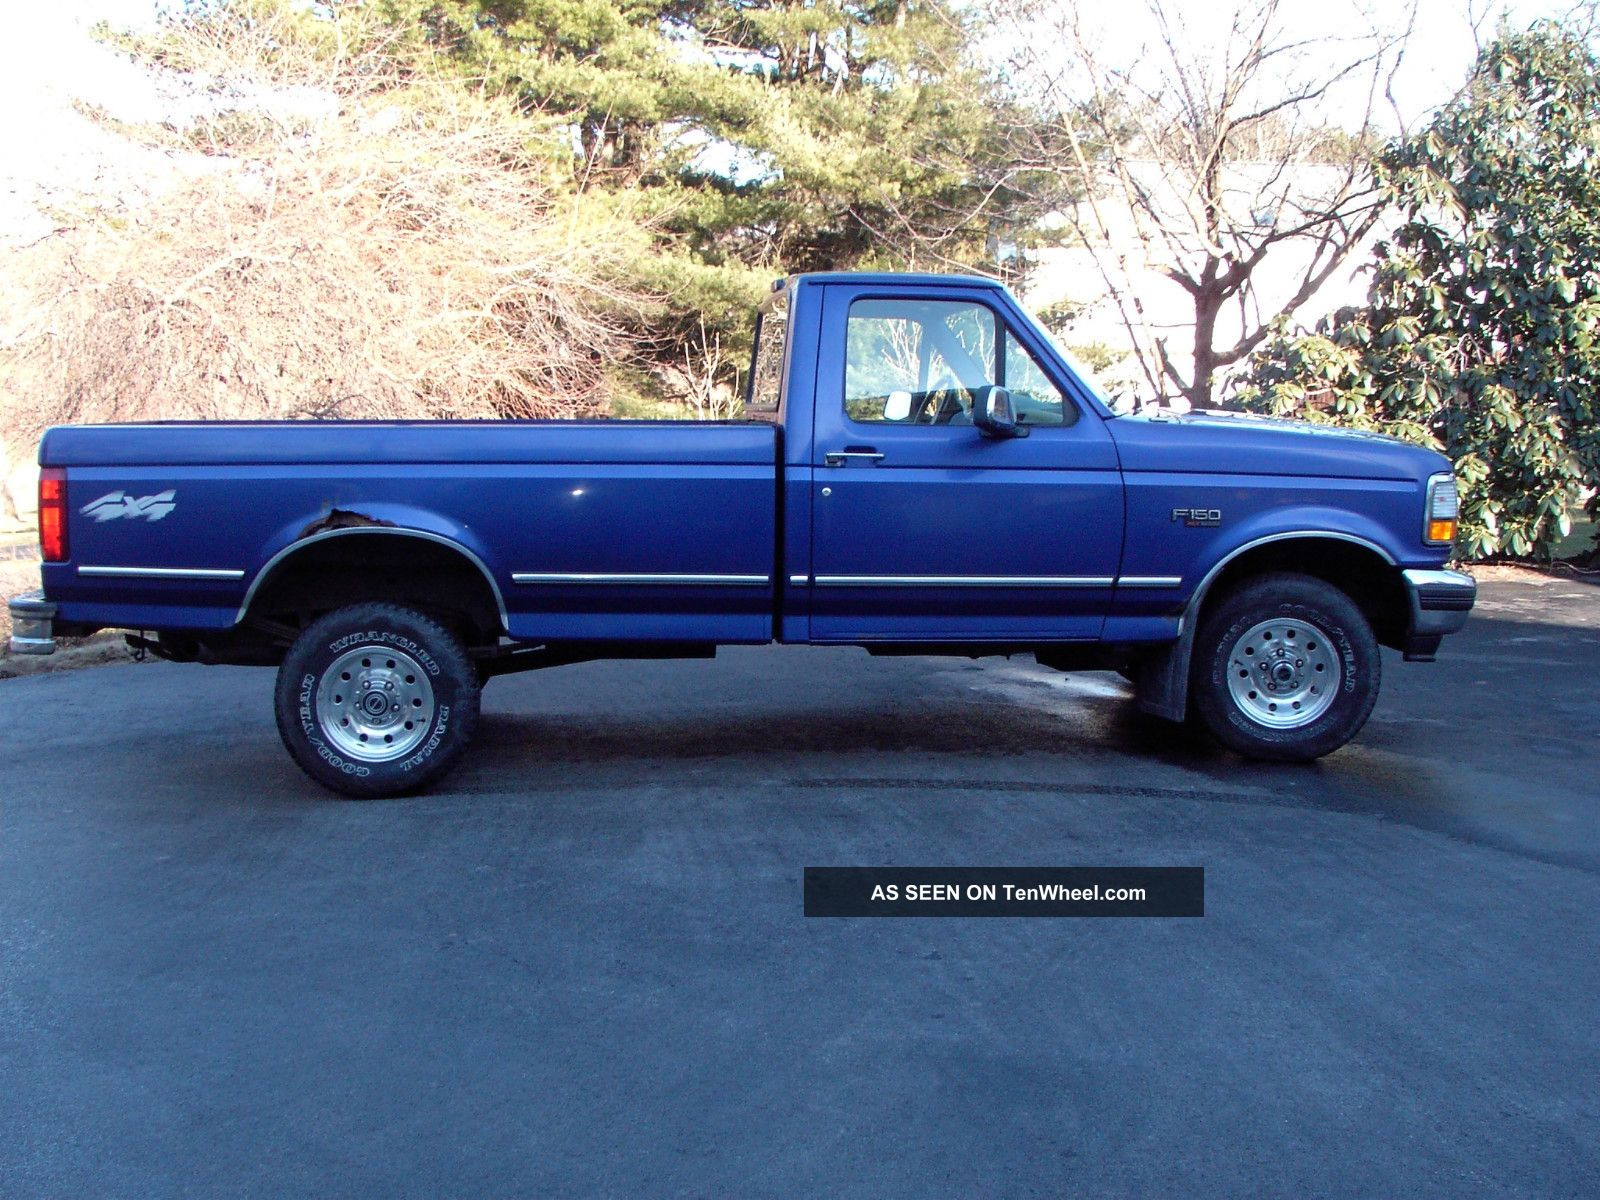 1995 Ford F - 150 F150 4x4 4wd Longbed Pickup Truck 5. 0 Automatic